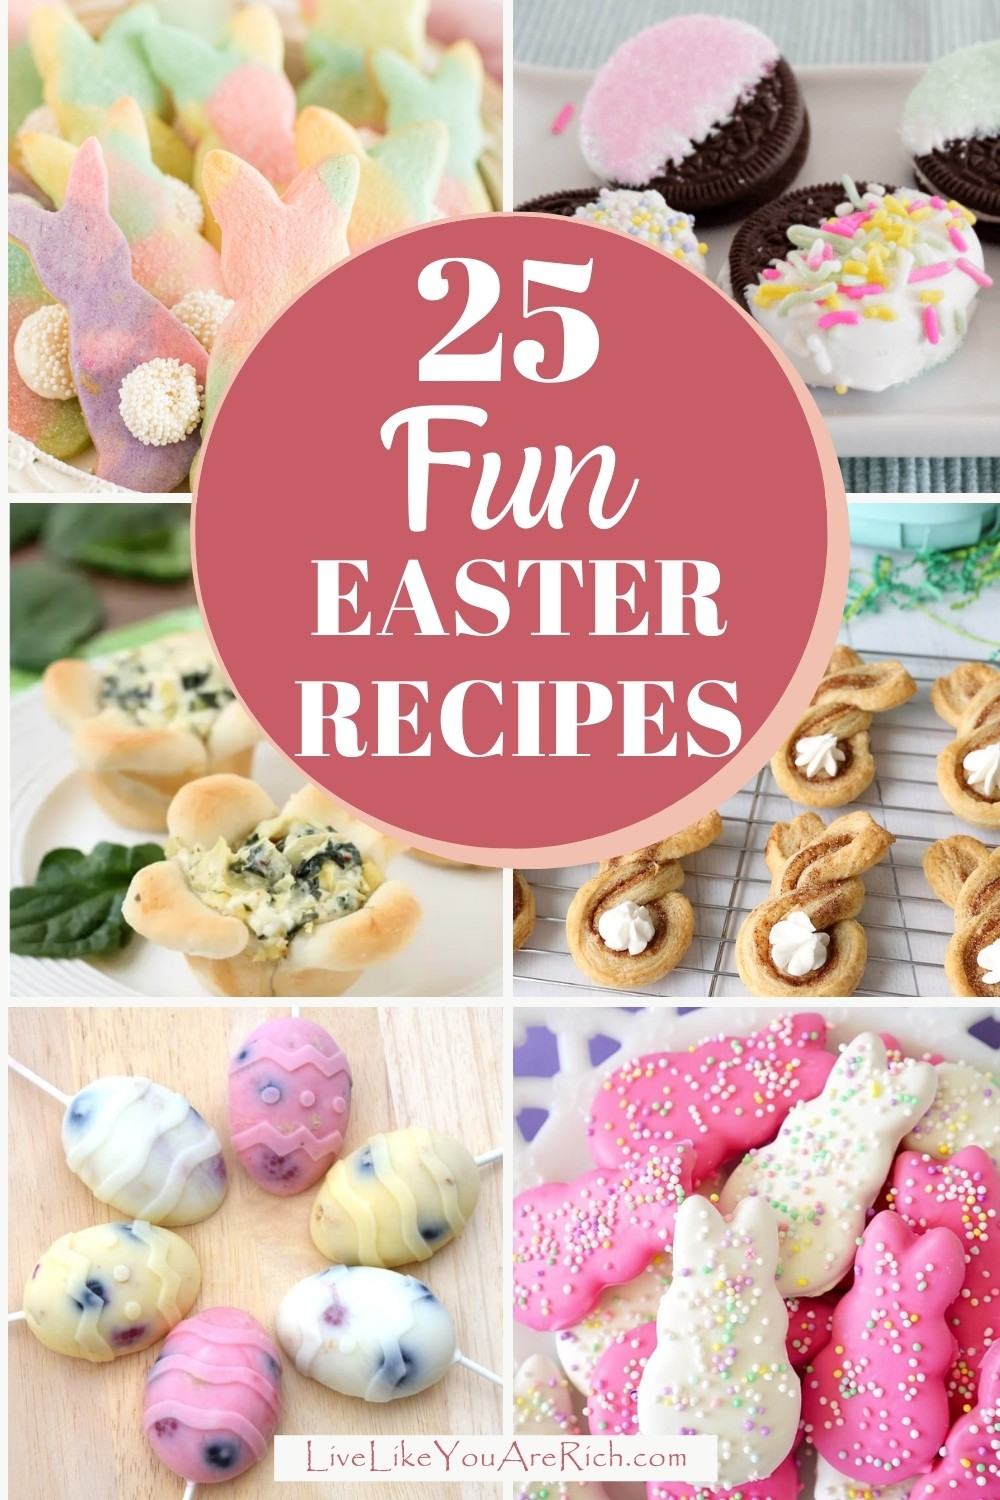 Easter is such a lovely holiday. Making Easter themed recipes are a great way to celebrate as well. Here are 19 Fun Easter Recipes that are great for families with kids!